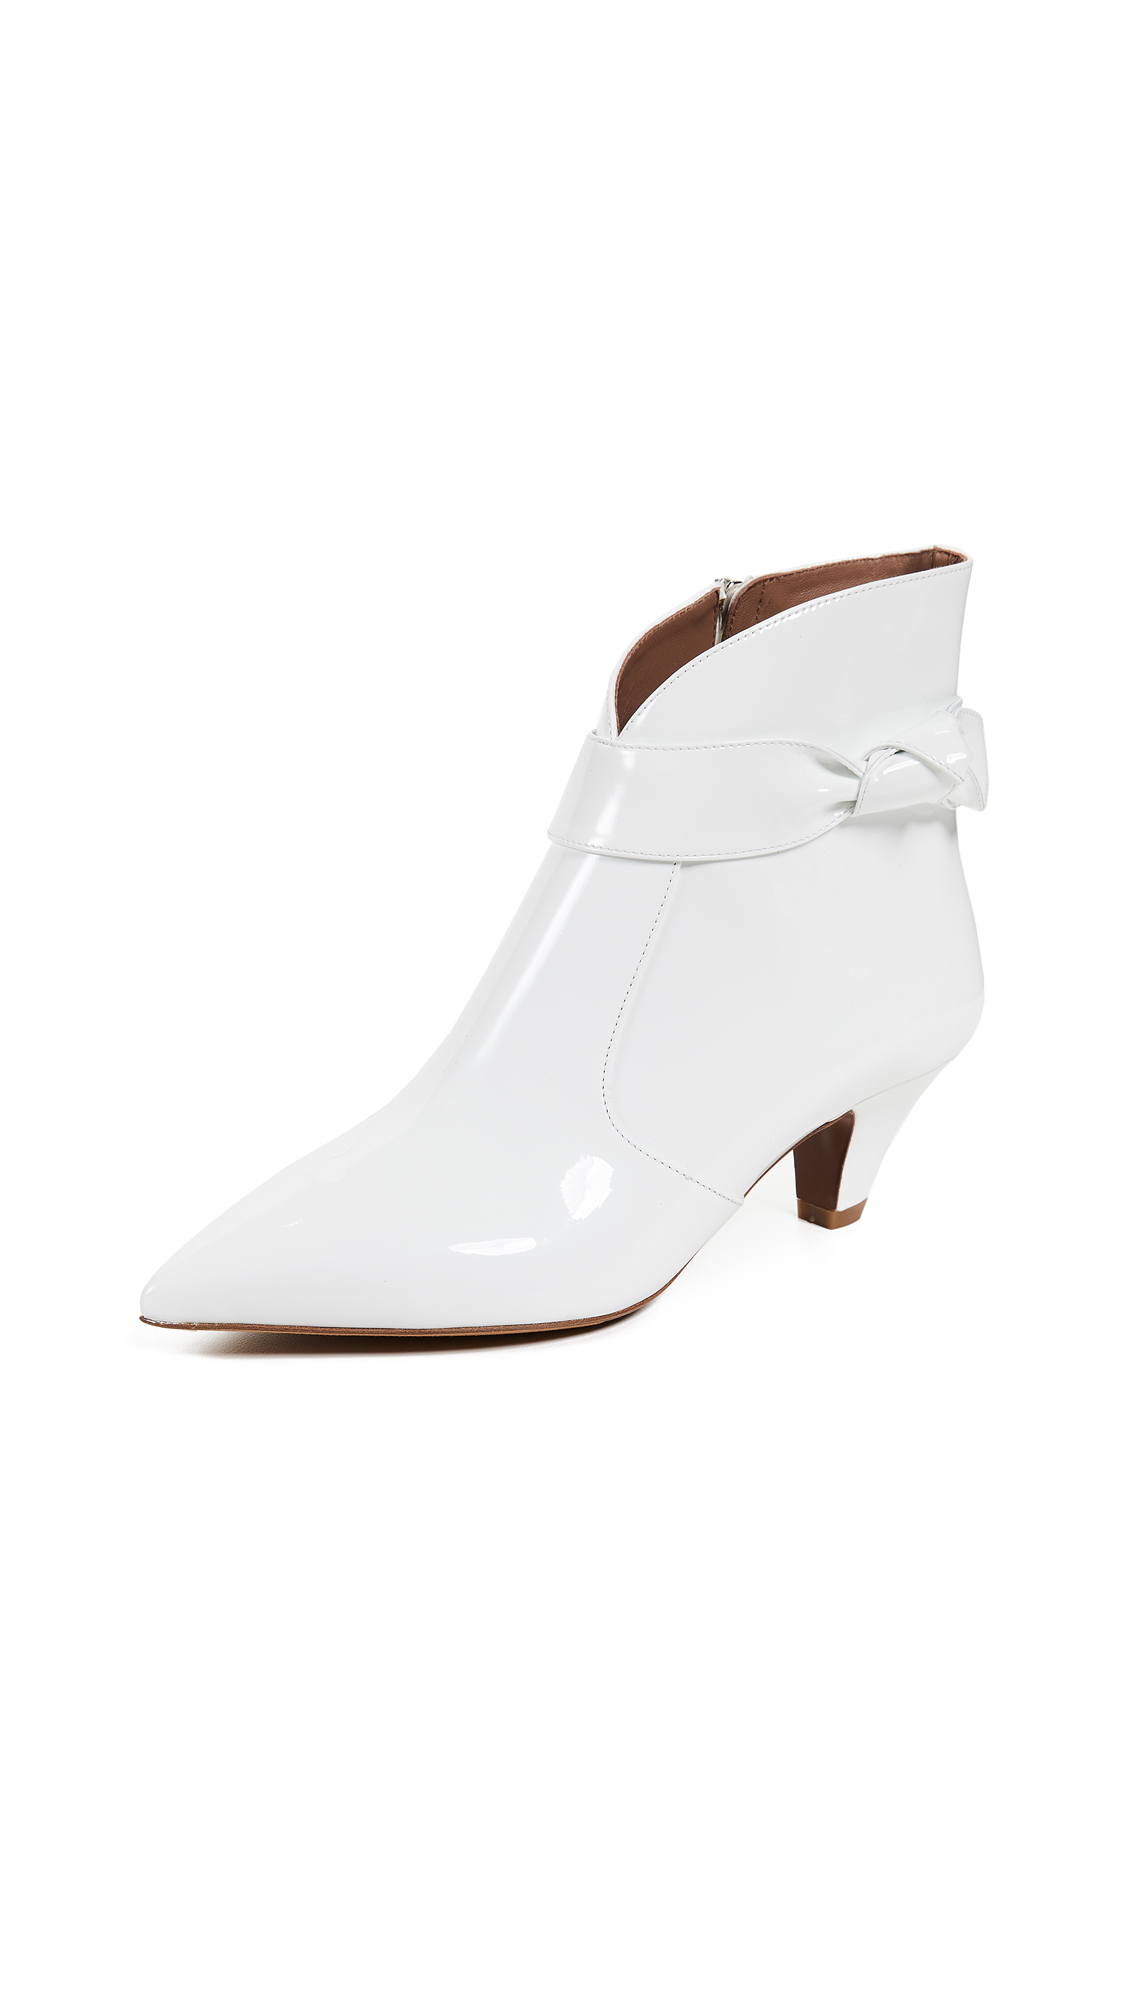 Tabitha Simmons Nixie Patent Booties - White